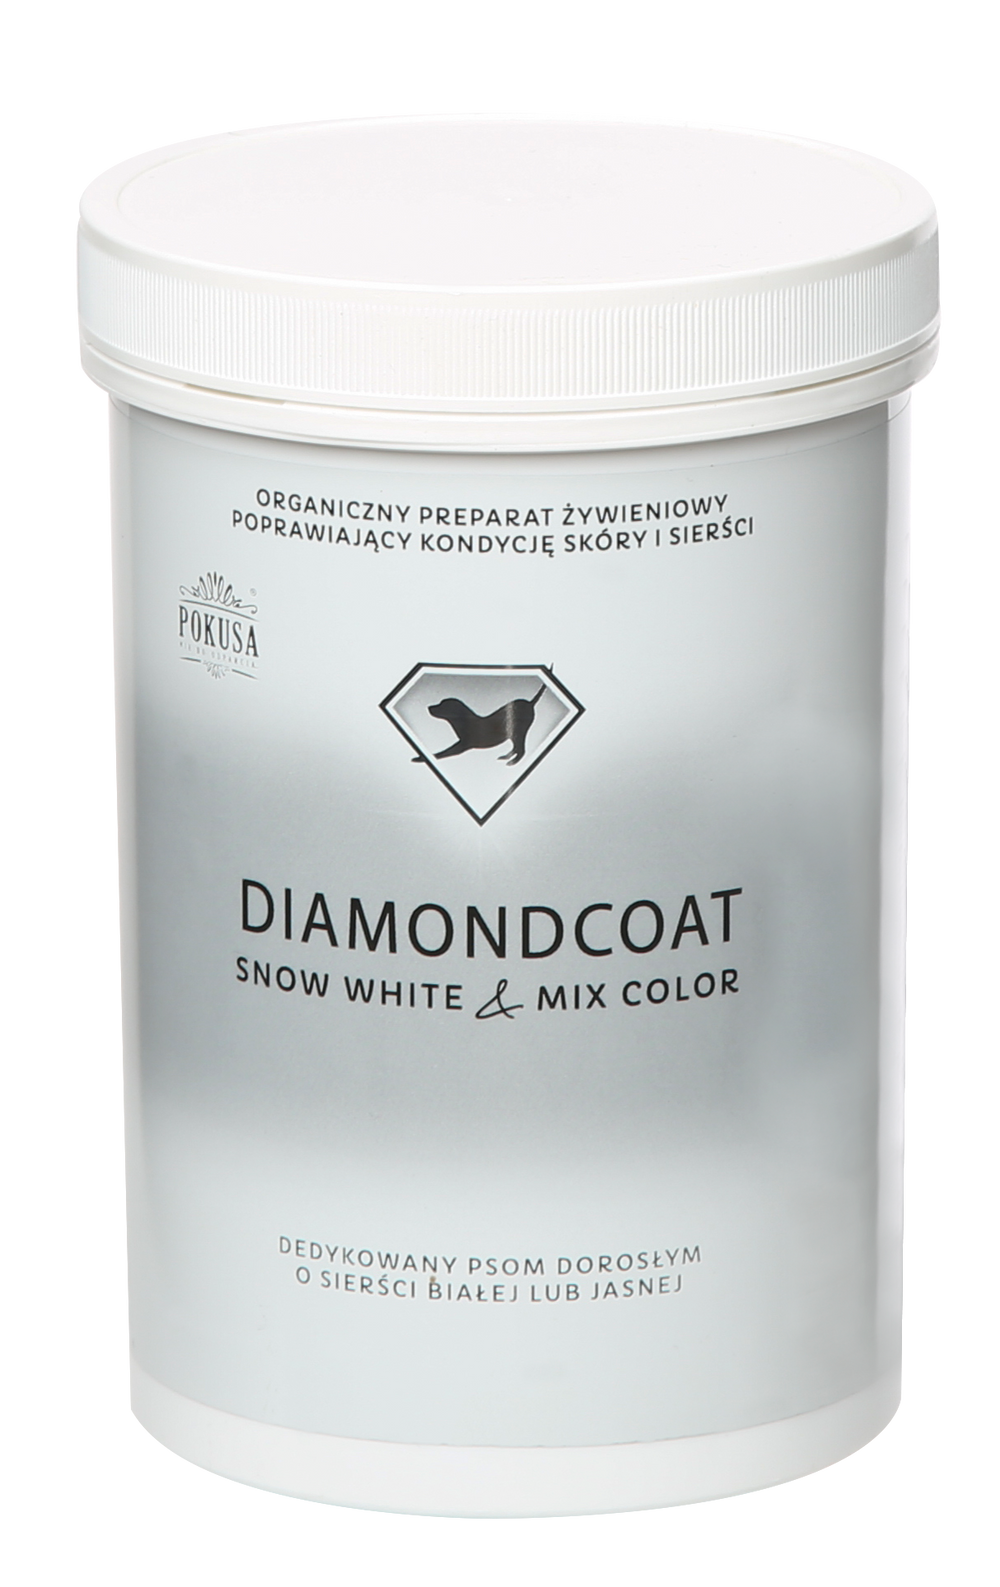 DiamondCoat Snow White & Mix Colour